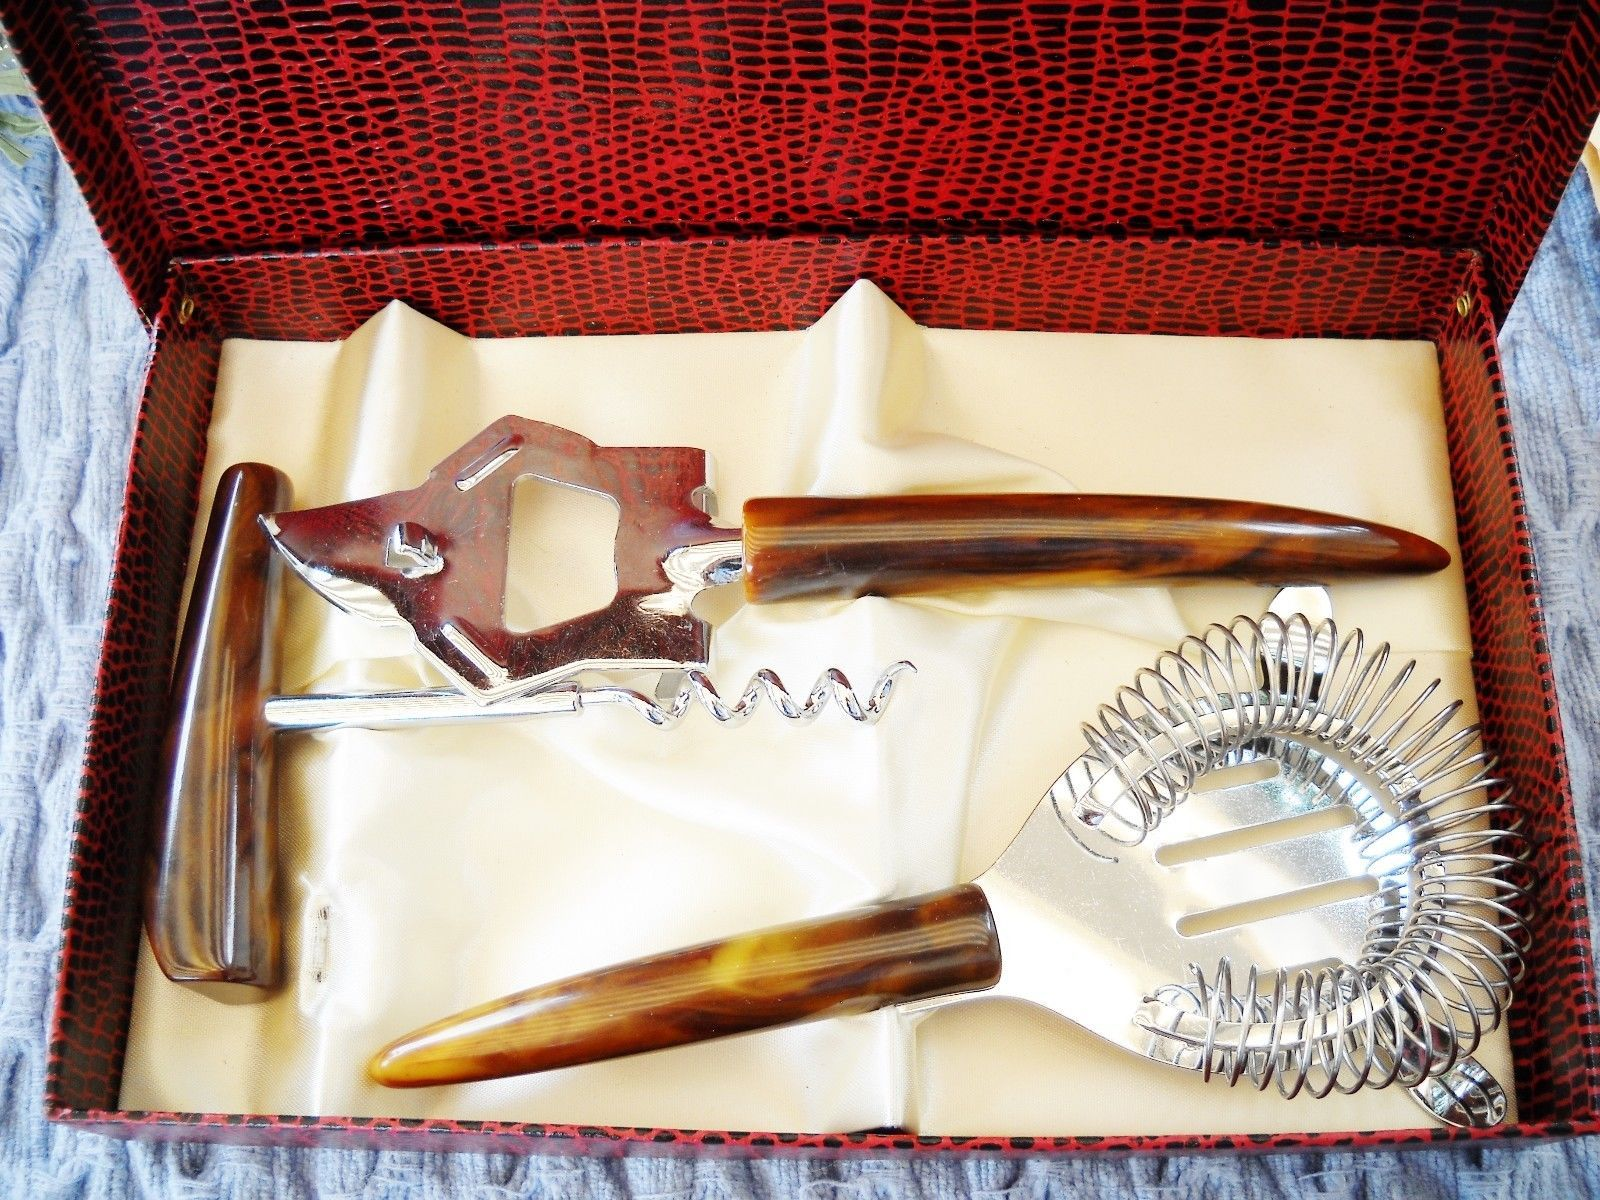 Primary image for VINTAGE 3-PC STAINLESS STEEL BAR SET W/MARBLED LUCITE HANDLES, ORIGINAL BOX